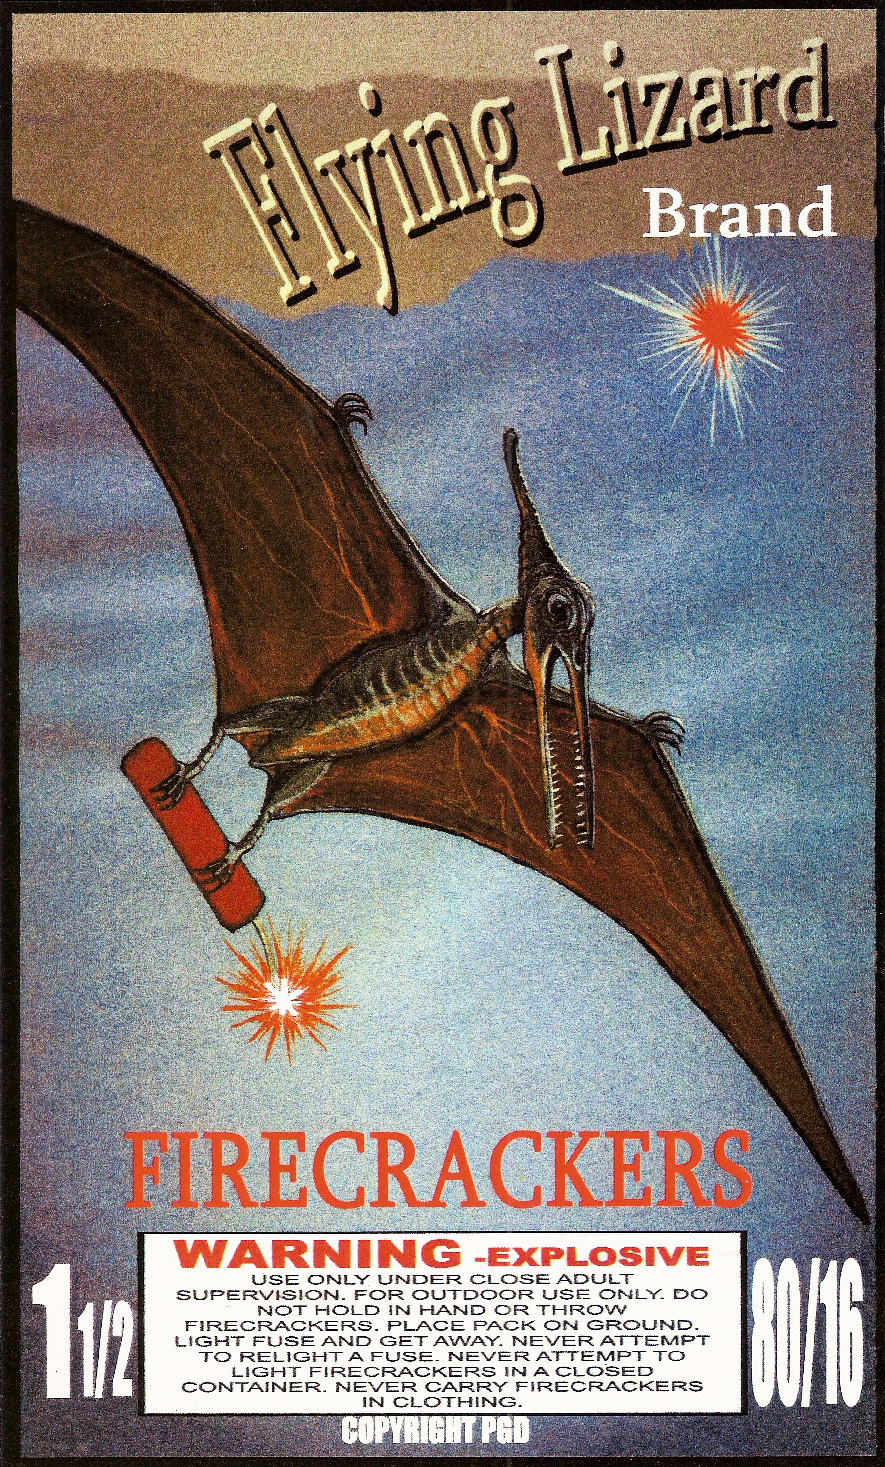 FLYING LIZARD - Firecracker Brick Label